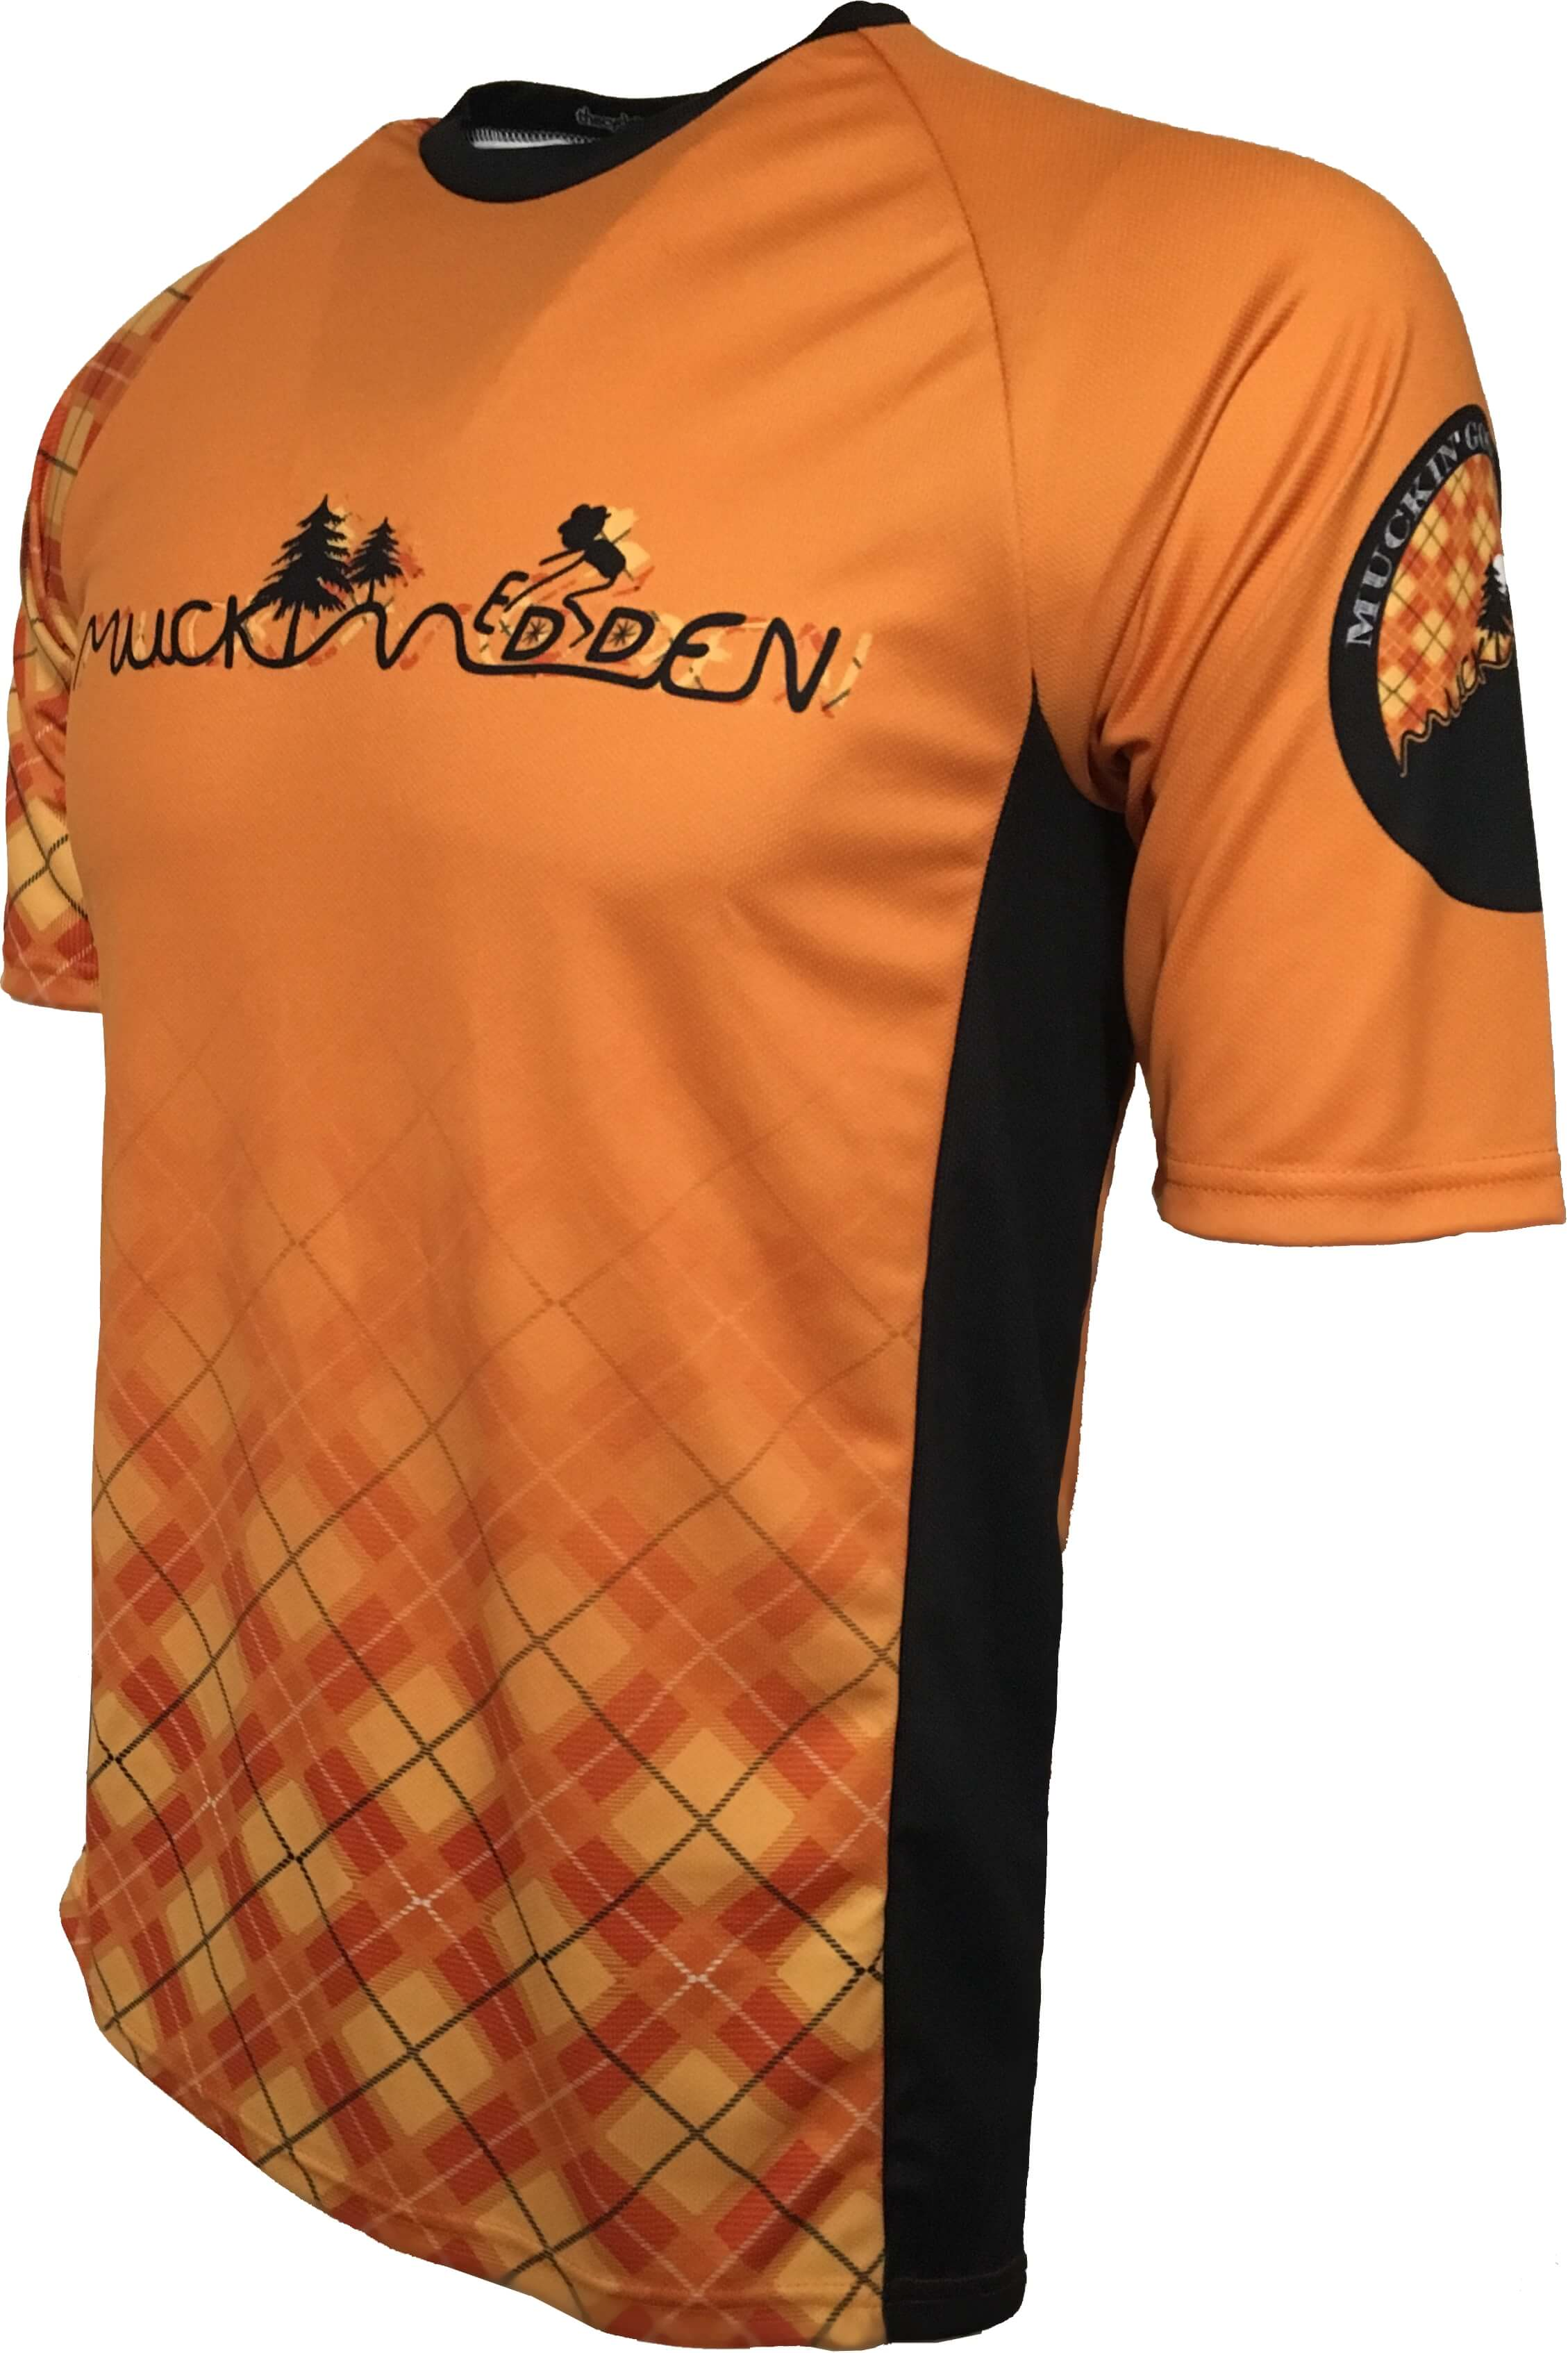 Muckmedden Events Kids Jersey